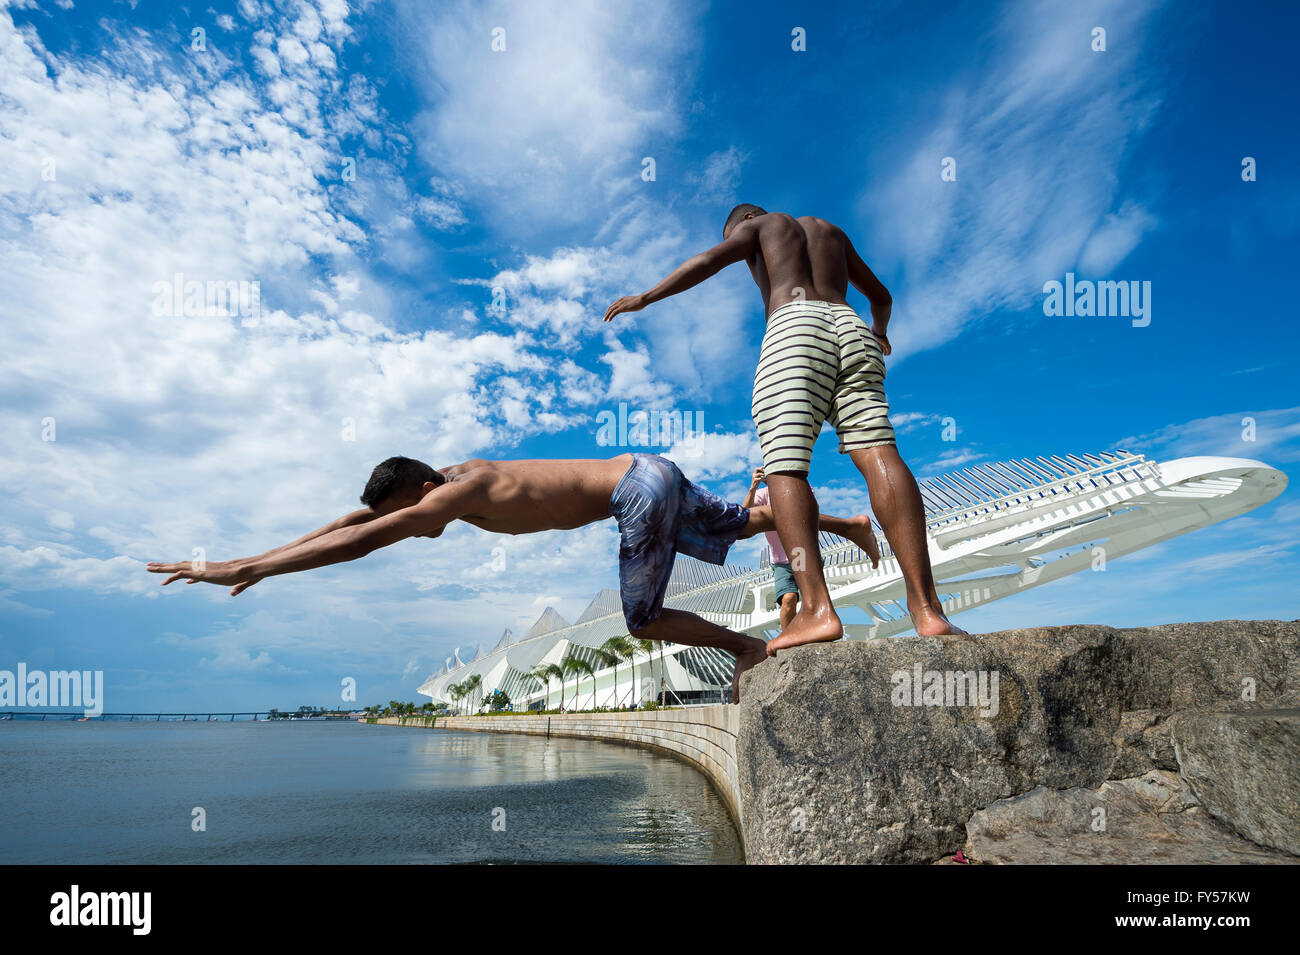 RIO DE JANEIRO - FEBRUARY 25, 2016: Young Brazilians jump into Guanabara Bay from the wall in front of the Museum - Stock Image